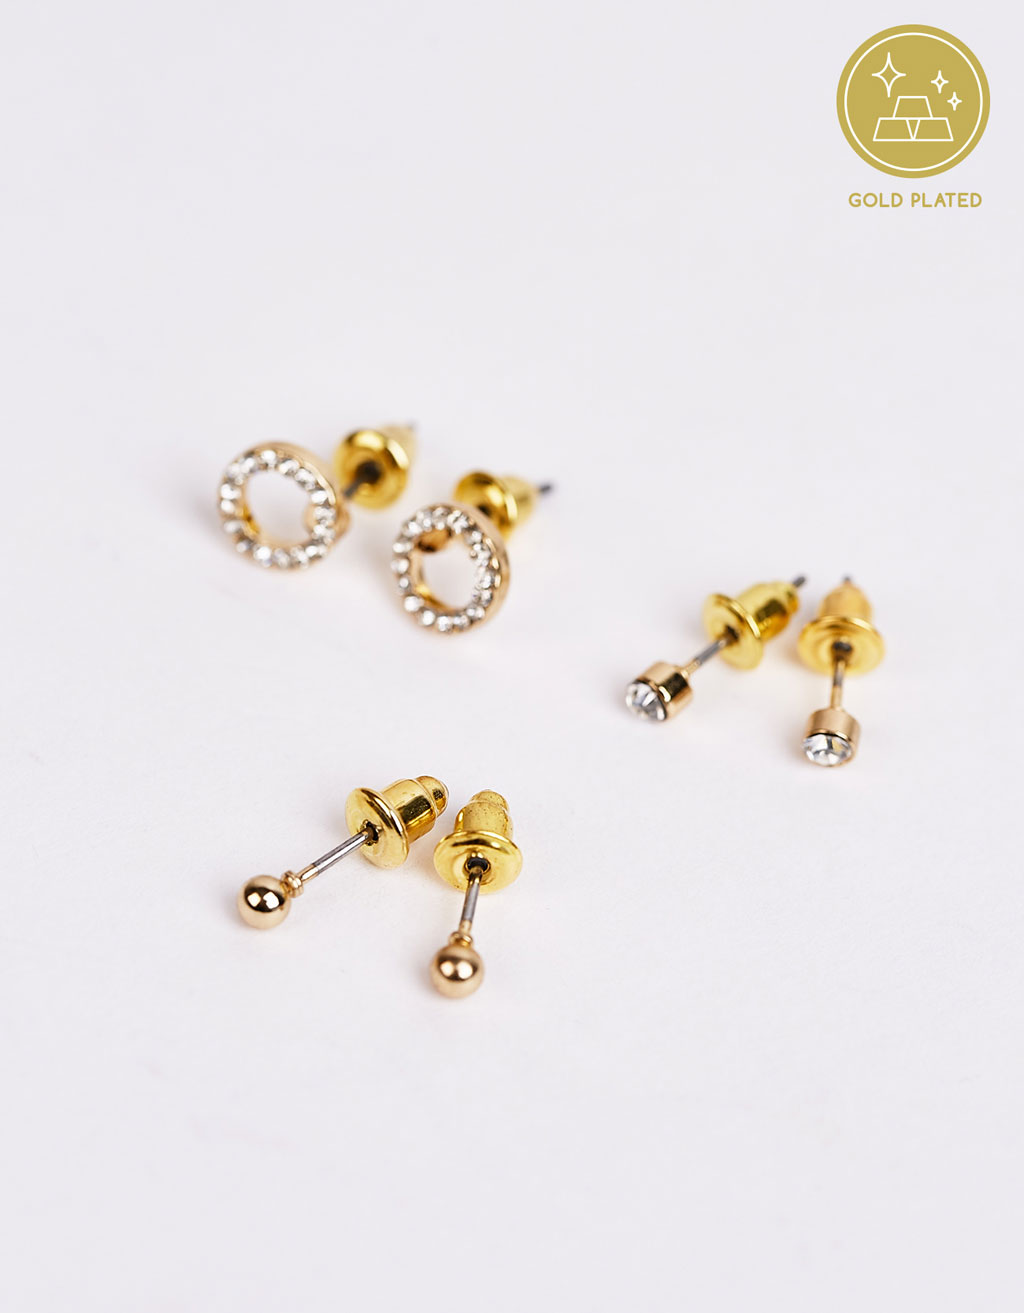 Set of 3 minimal golden earrings